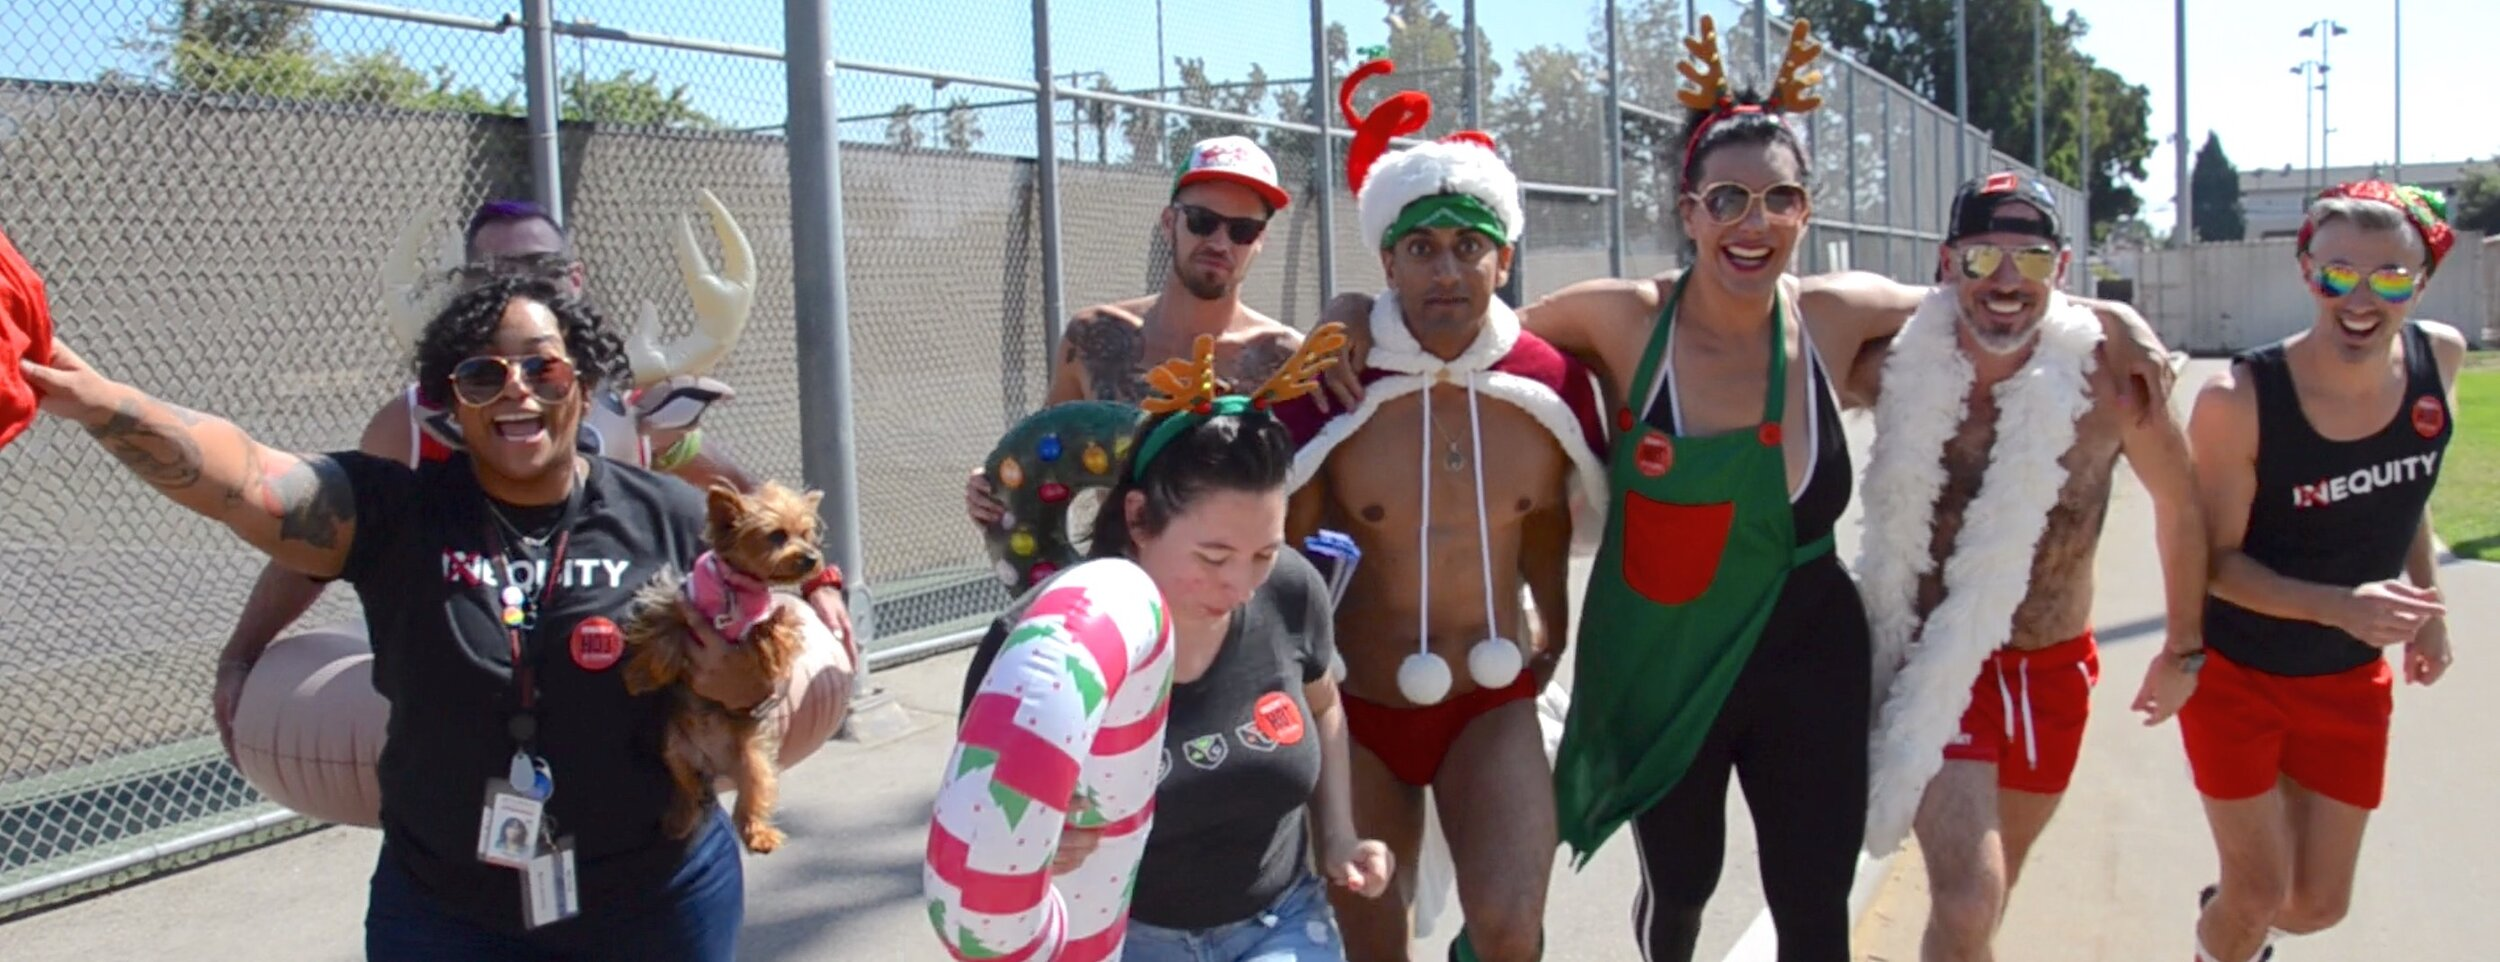 Santa Strut is coming to town! -